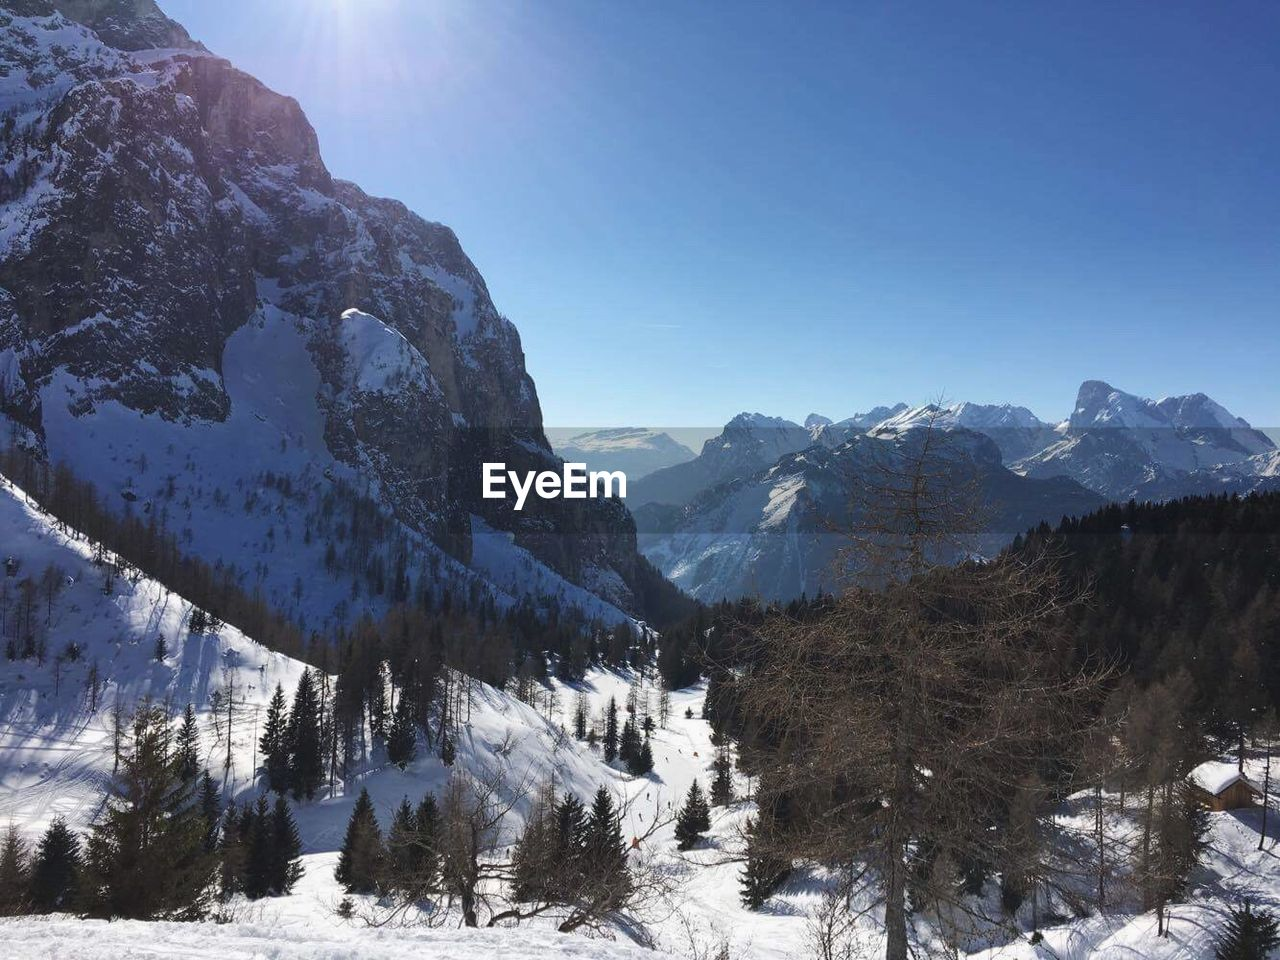 snow, winter, cold temperature, mountain, nature, beauty in nature, tranquil scene, tranquility, scenics, mountain range, snowcapped mountain, outdoors, day, no people, frozen, landscape, clear sky, sky, tree, range